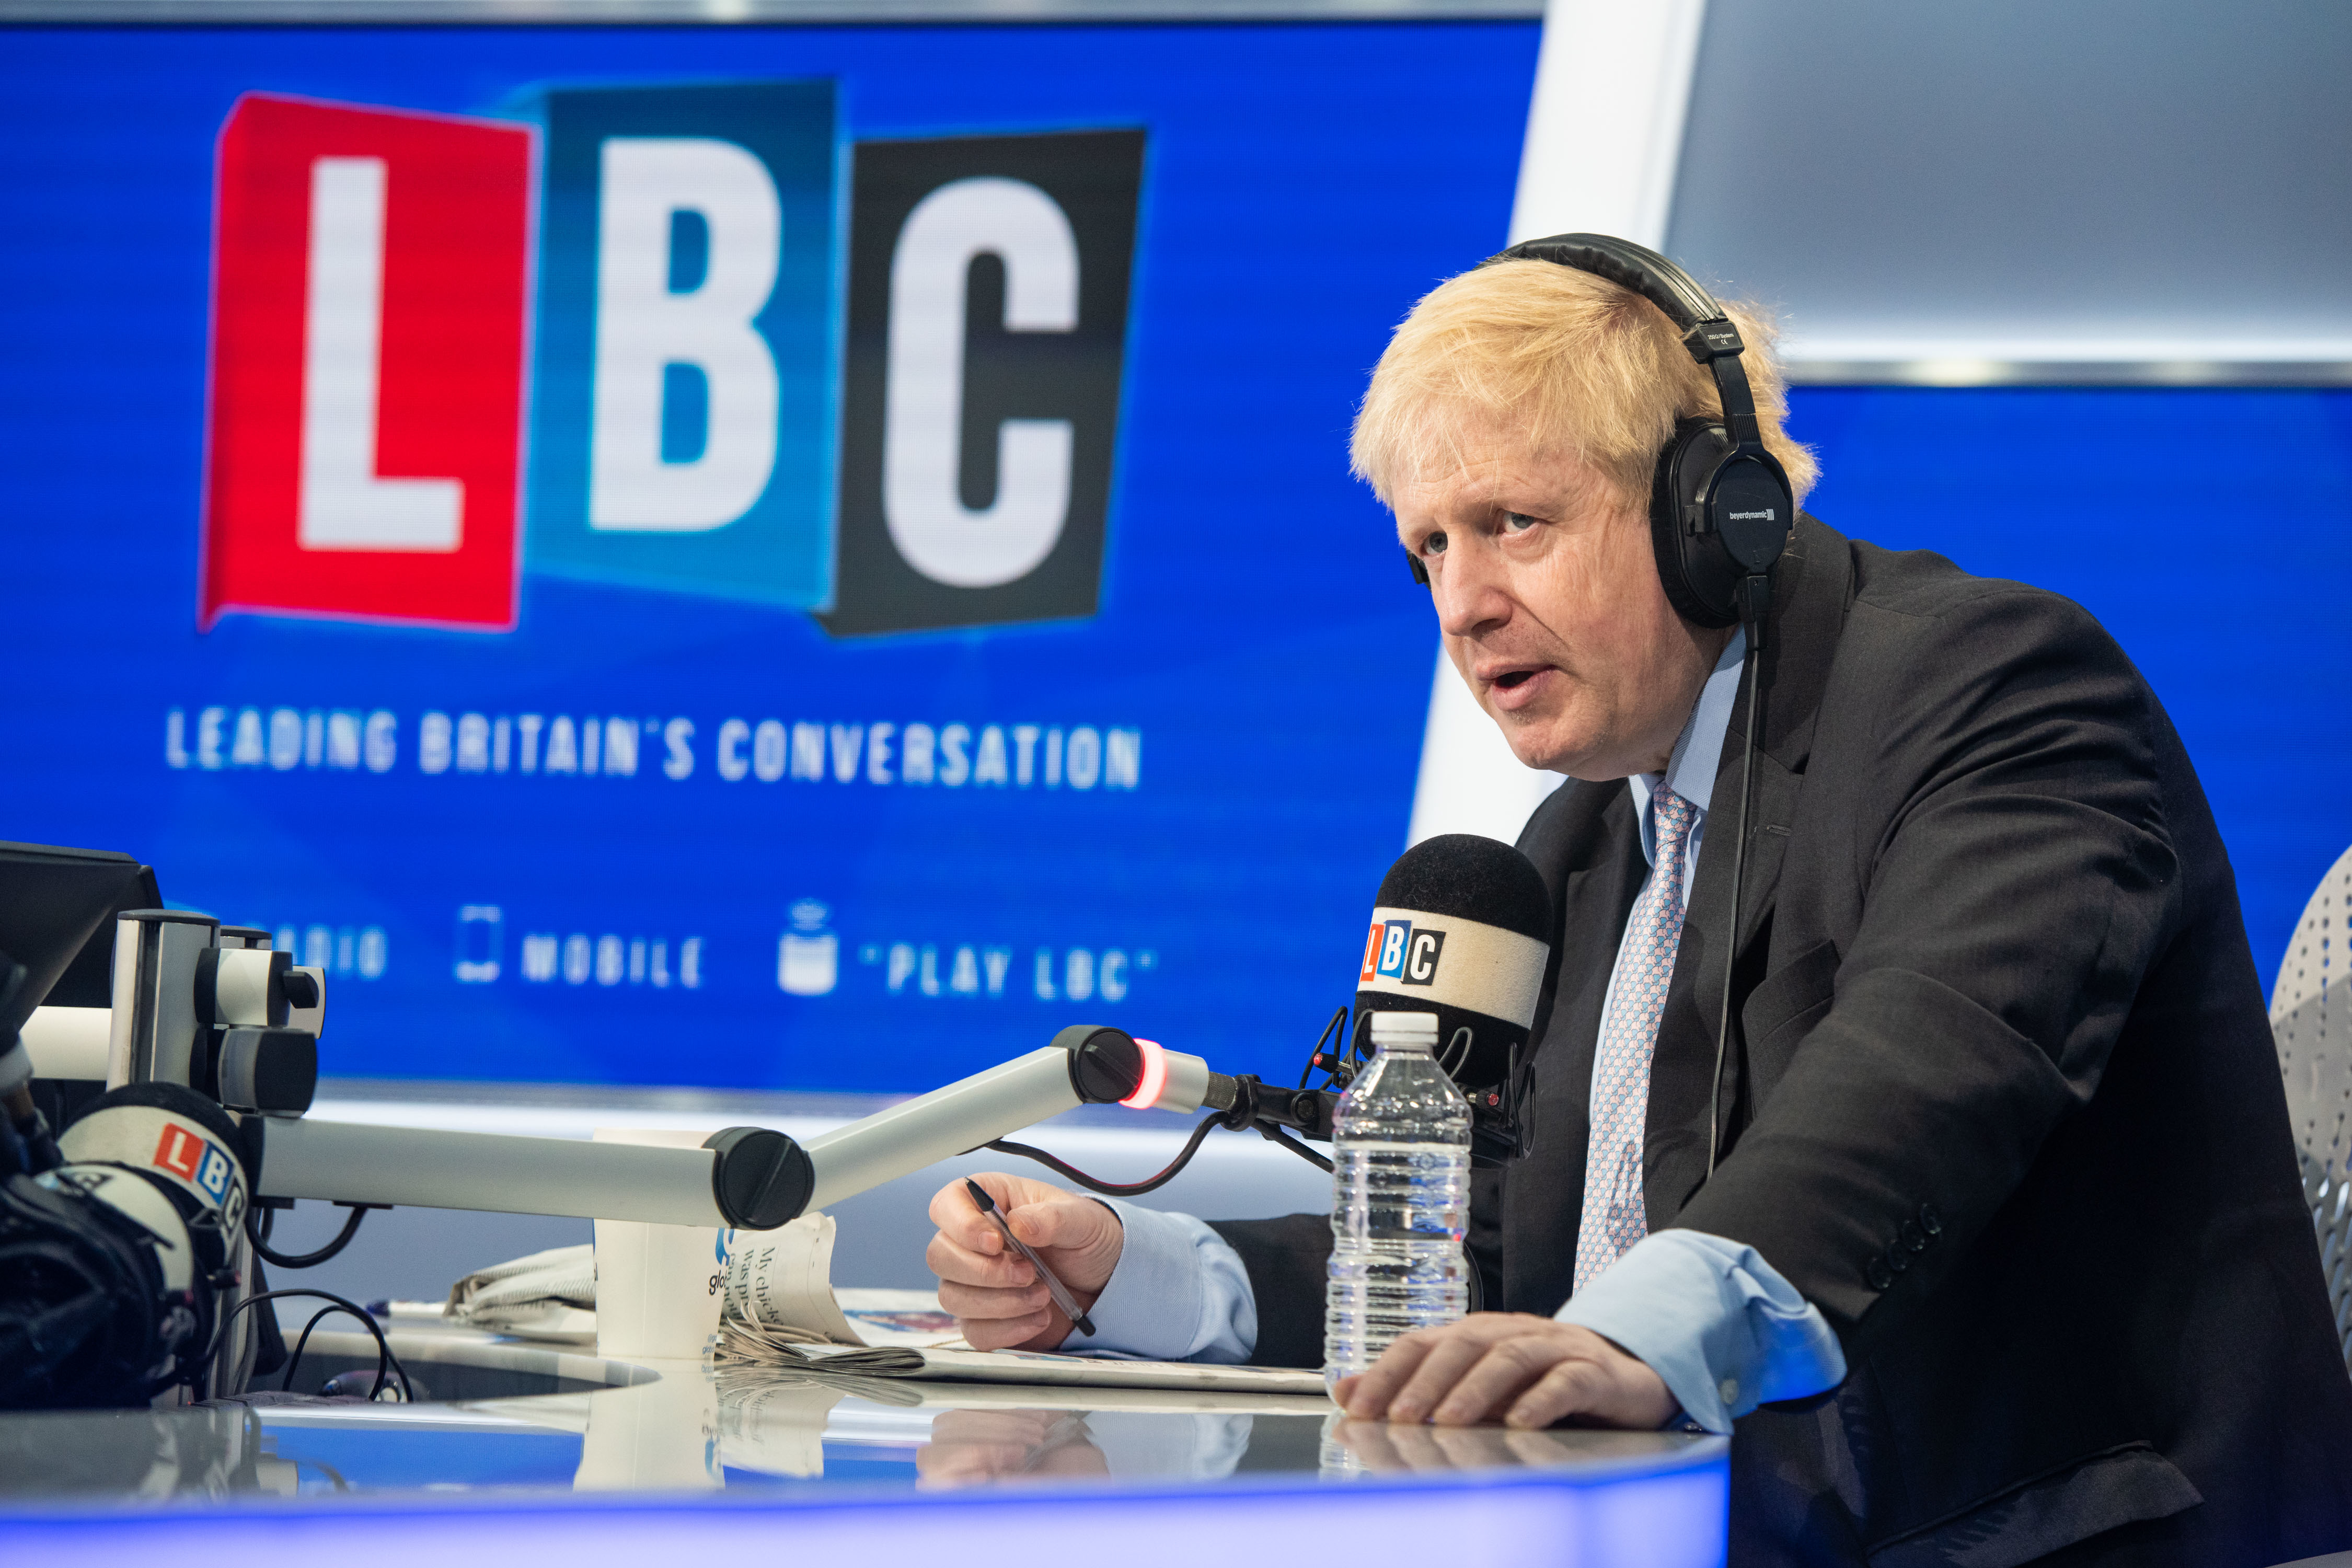 Boris Johnson pictured during a live radio phone-in on Nick Ferrari at Breakfast, on LBC, at their studios in central London. Picture date: Monday 14th January, 2018 . Photo credit should read: Matt Crossick/ EMPICS Entertainment.